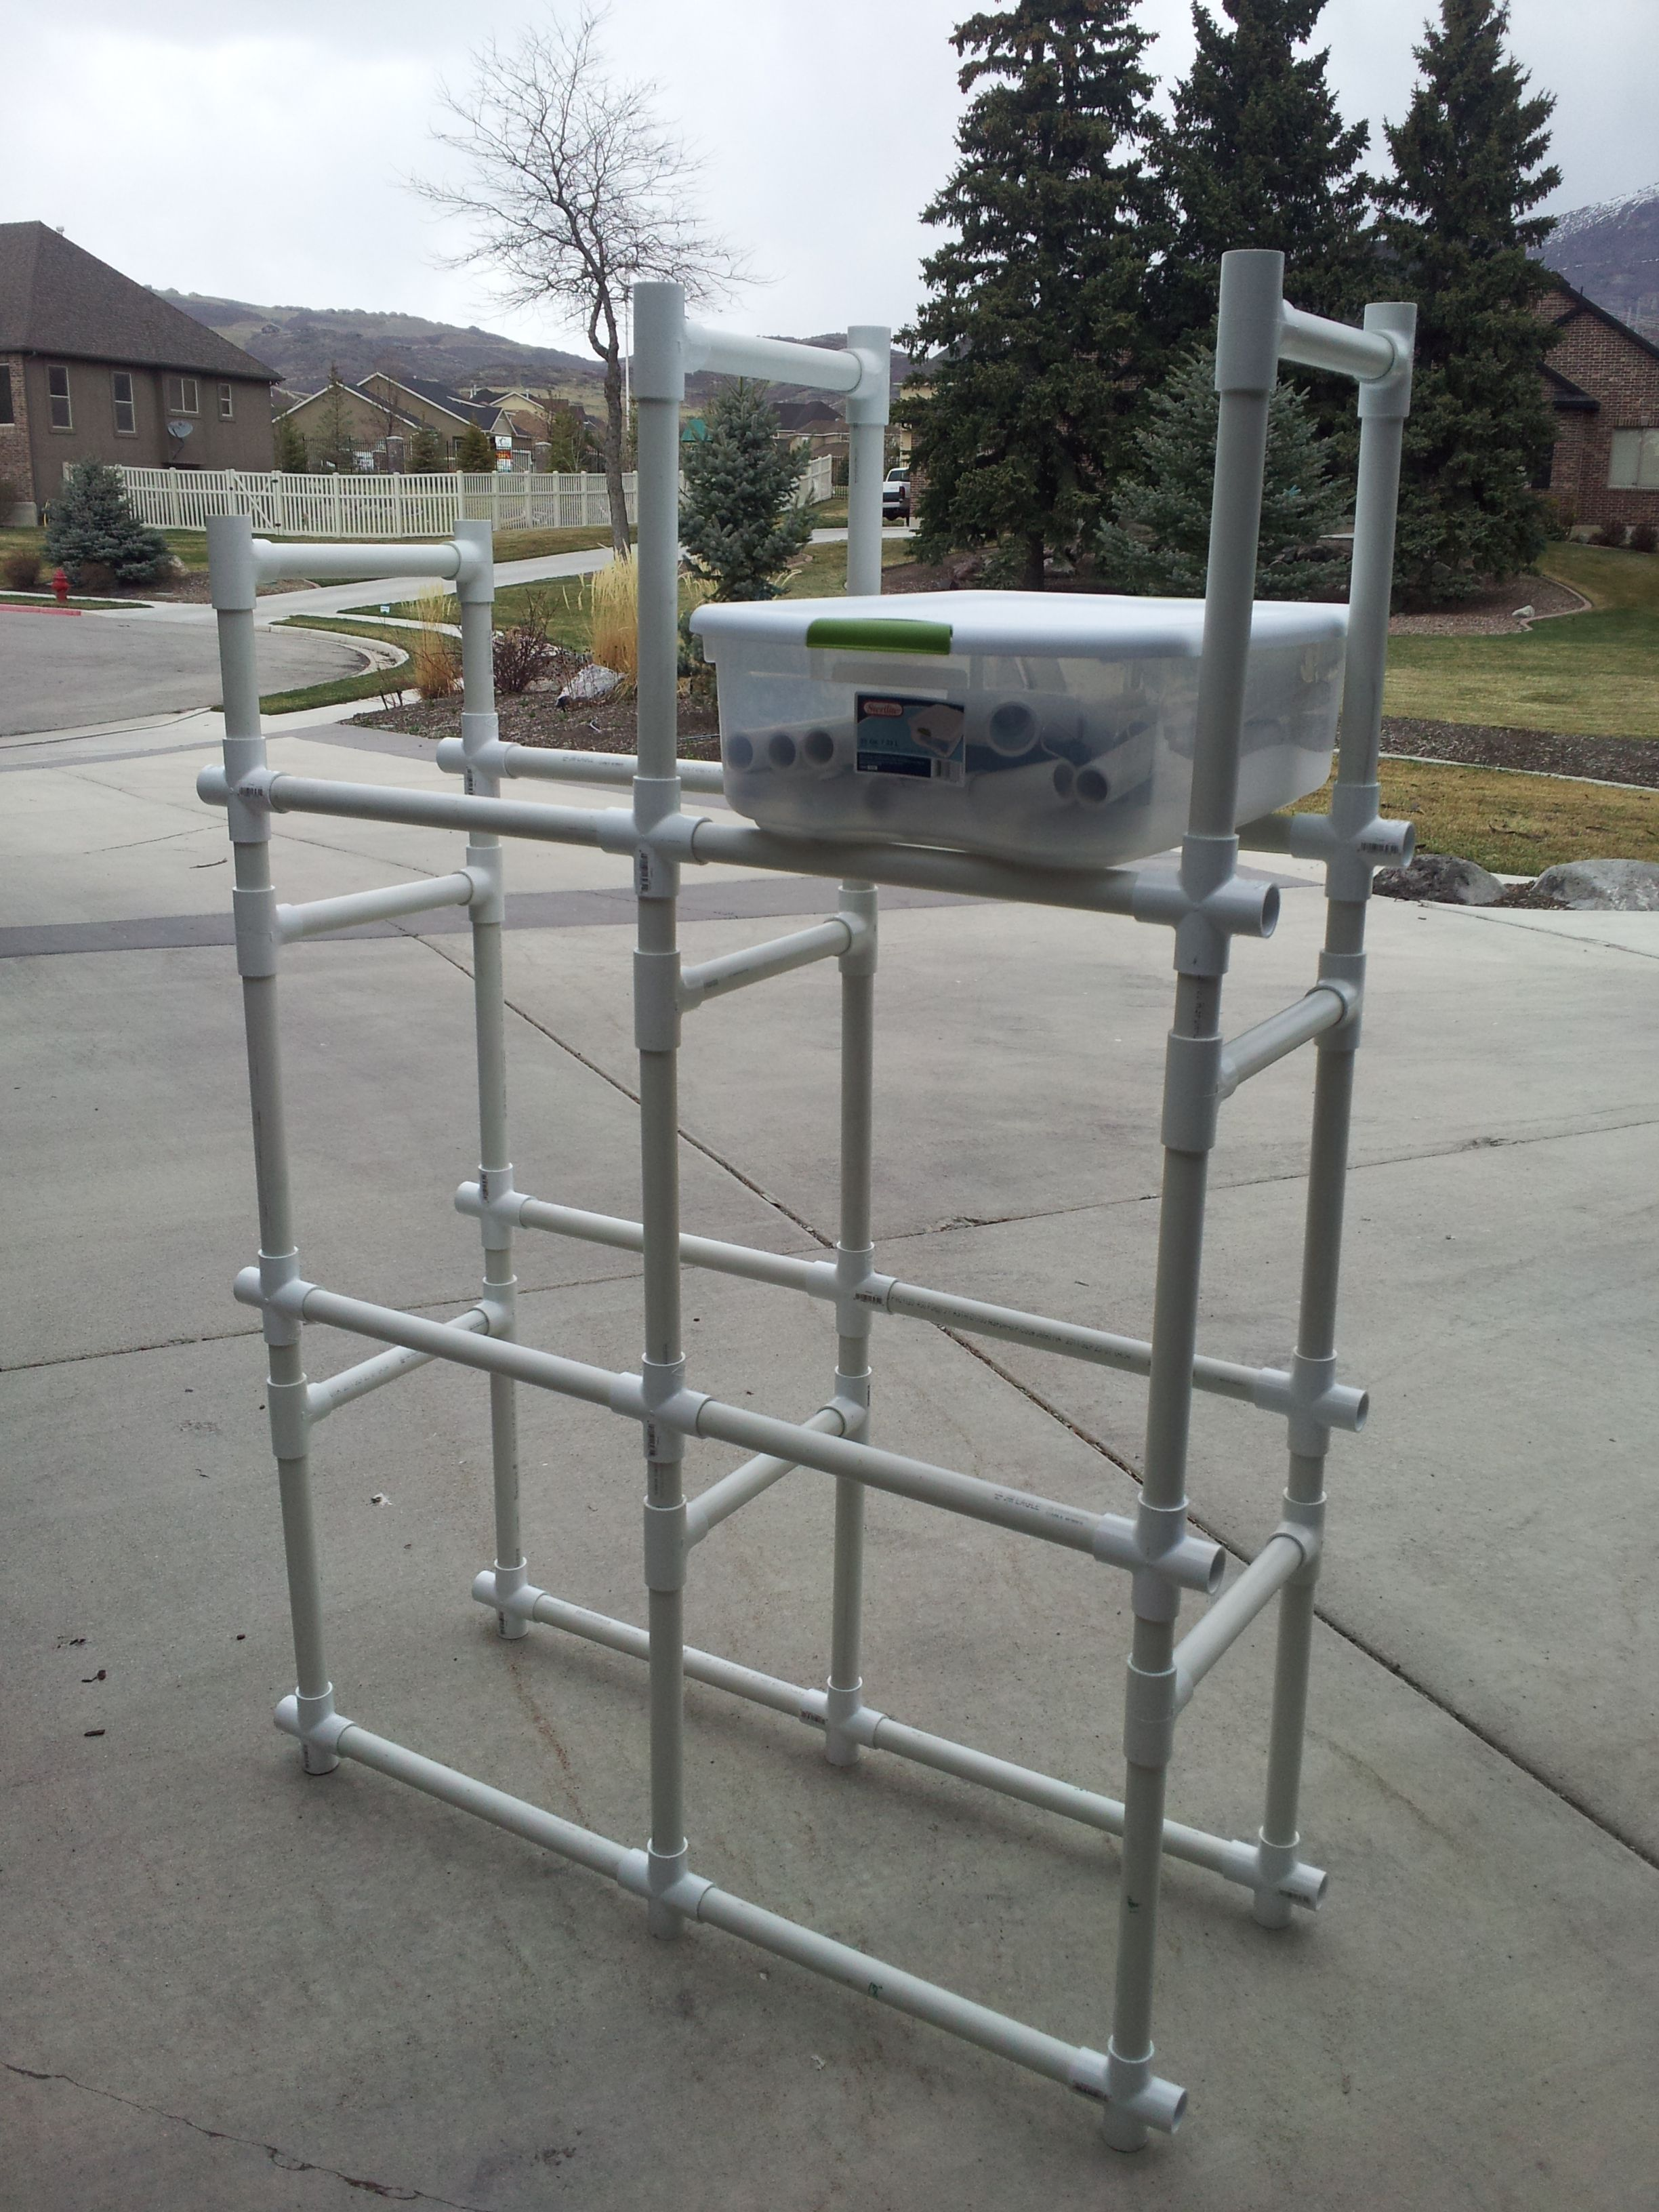 """Storage bins made of PVC. Simple and easy, anyone can do this project. Bins shown can hold up to 600 pounds. Materials used in this picture; PVC cutter or saw, 18- X's, 18- T's, 12- 1"""" pipe at 20 """", 9- 1"""" pipe at 12"""", 12- 1"""" pipe at 4"""". Can make this as tall and as wide as you want. For extra security when in use attach back side to wall with some sort of strap in 2 or more areas. No need to glue, easy to pack or unpack and assemble"""